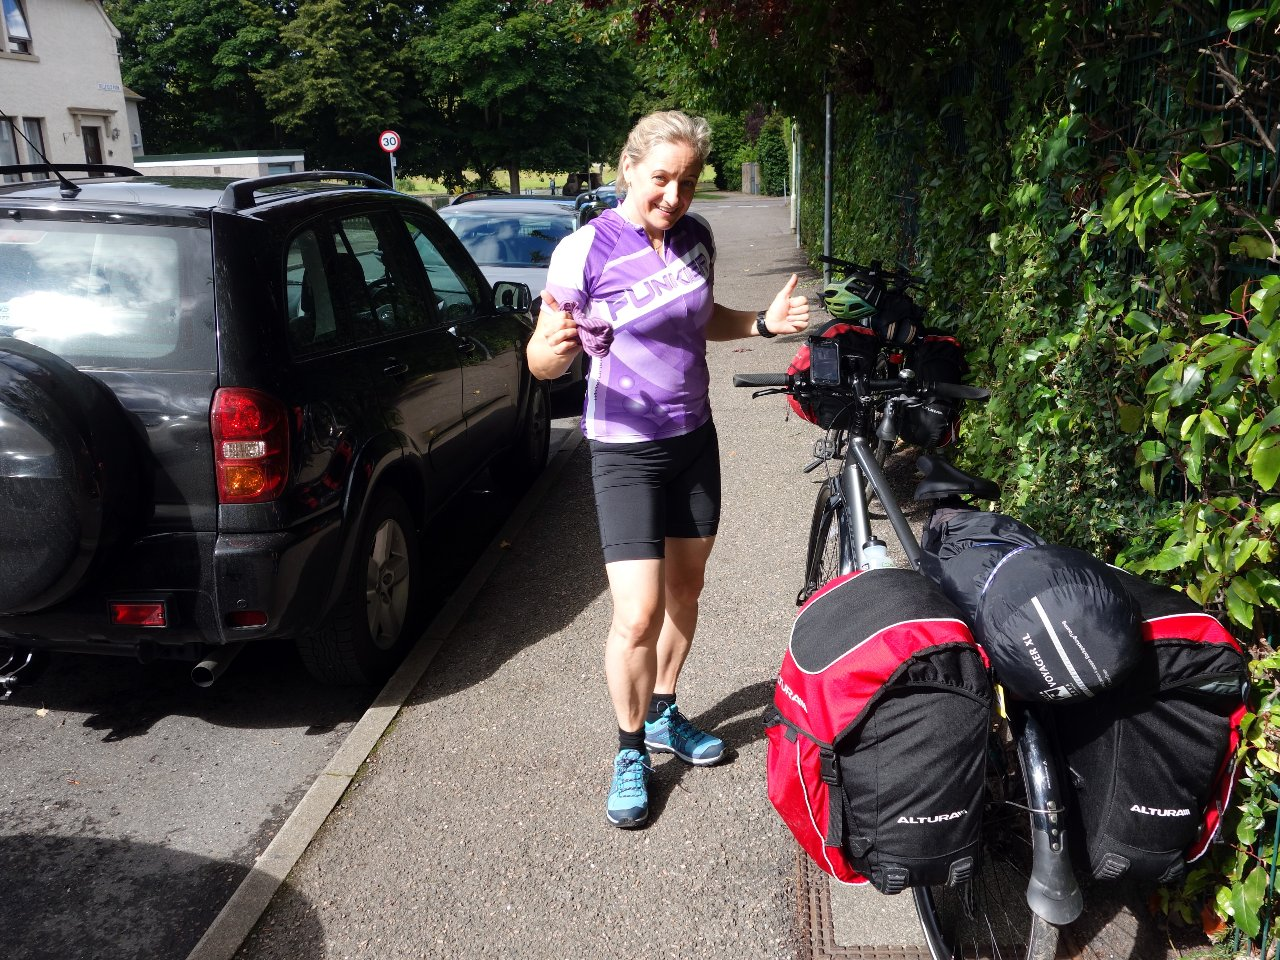 We hired a couple of hybrid bikes from Ticket to Ride in Inverness. As you can see, Edita was happy that we managed to get all our gear into the saddlebags with just a tent over the top.